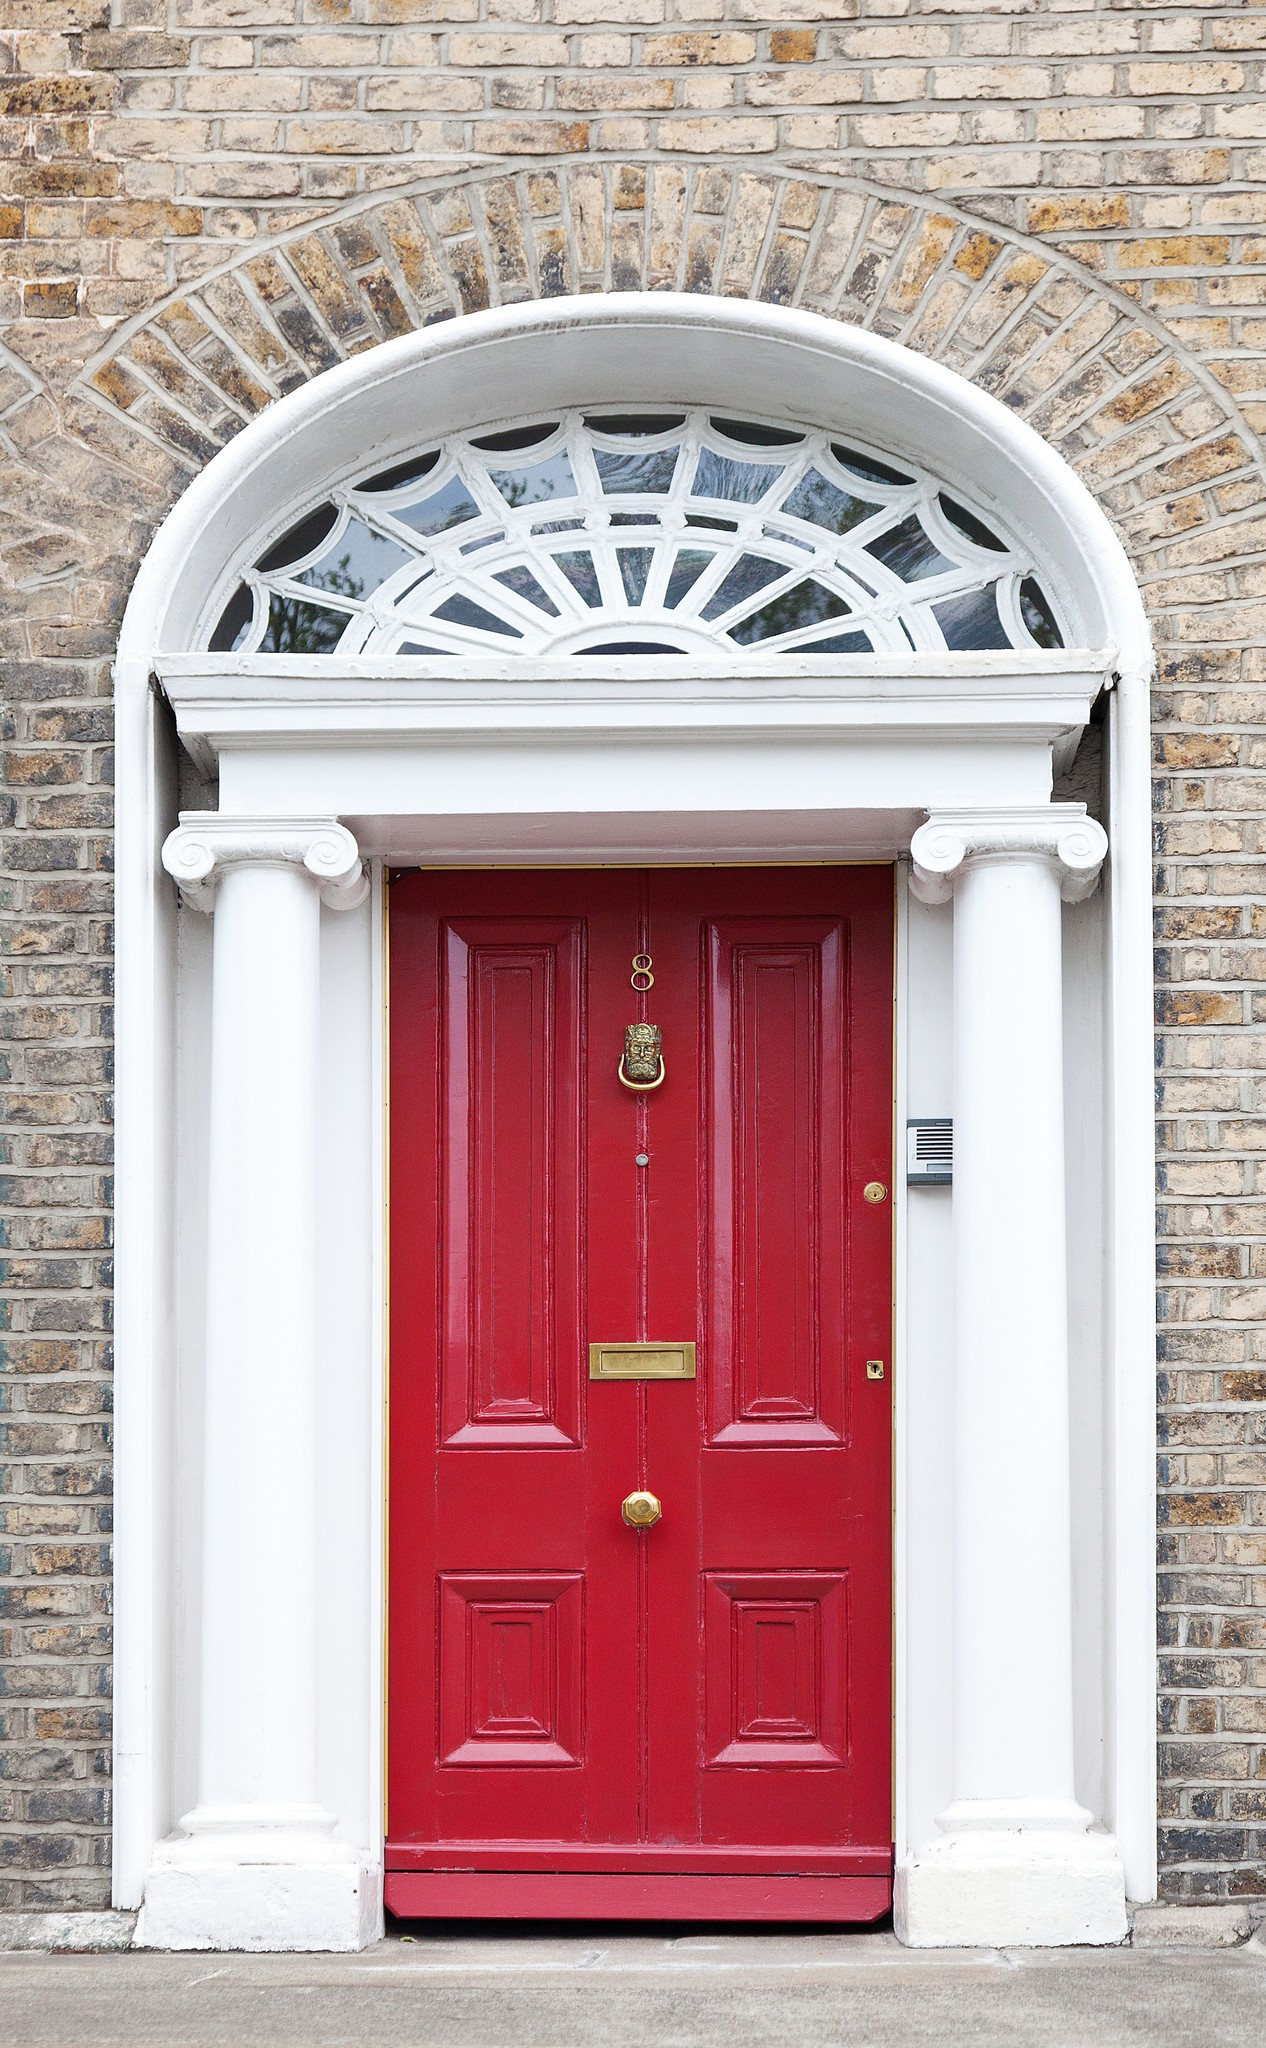 Signature megrame doors for Georgian style homes